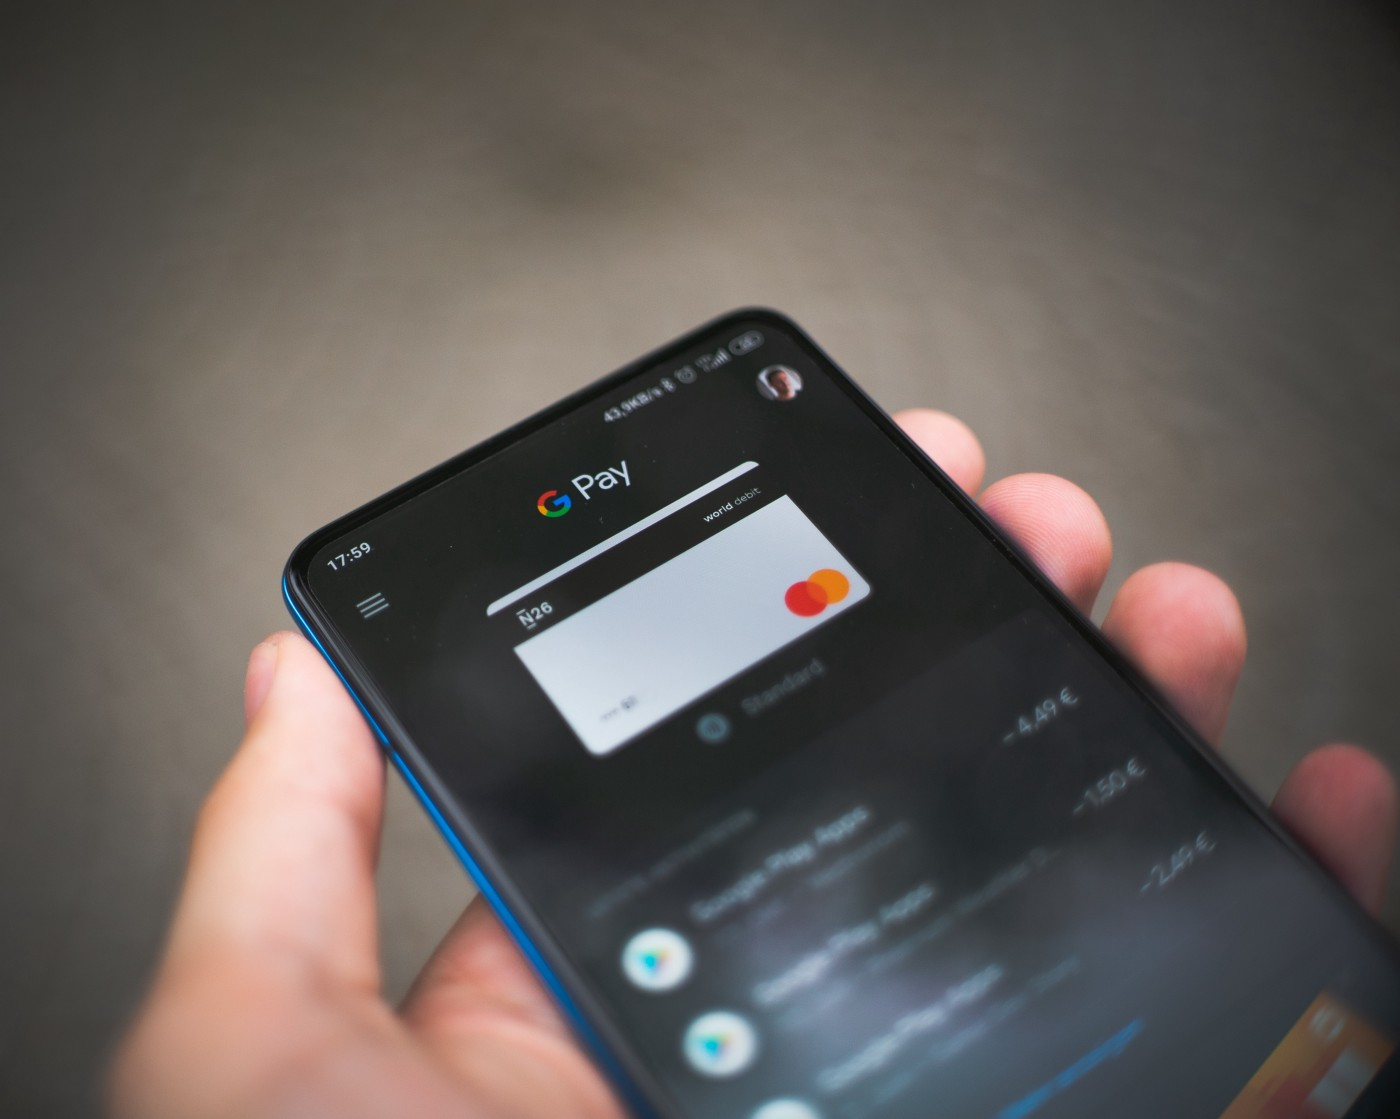 Image of Google Pay on phone.